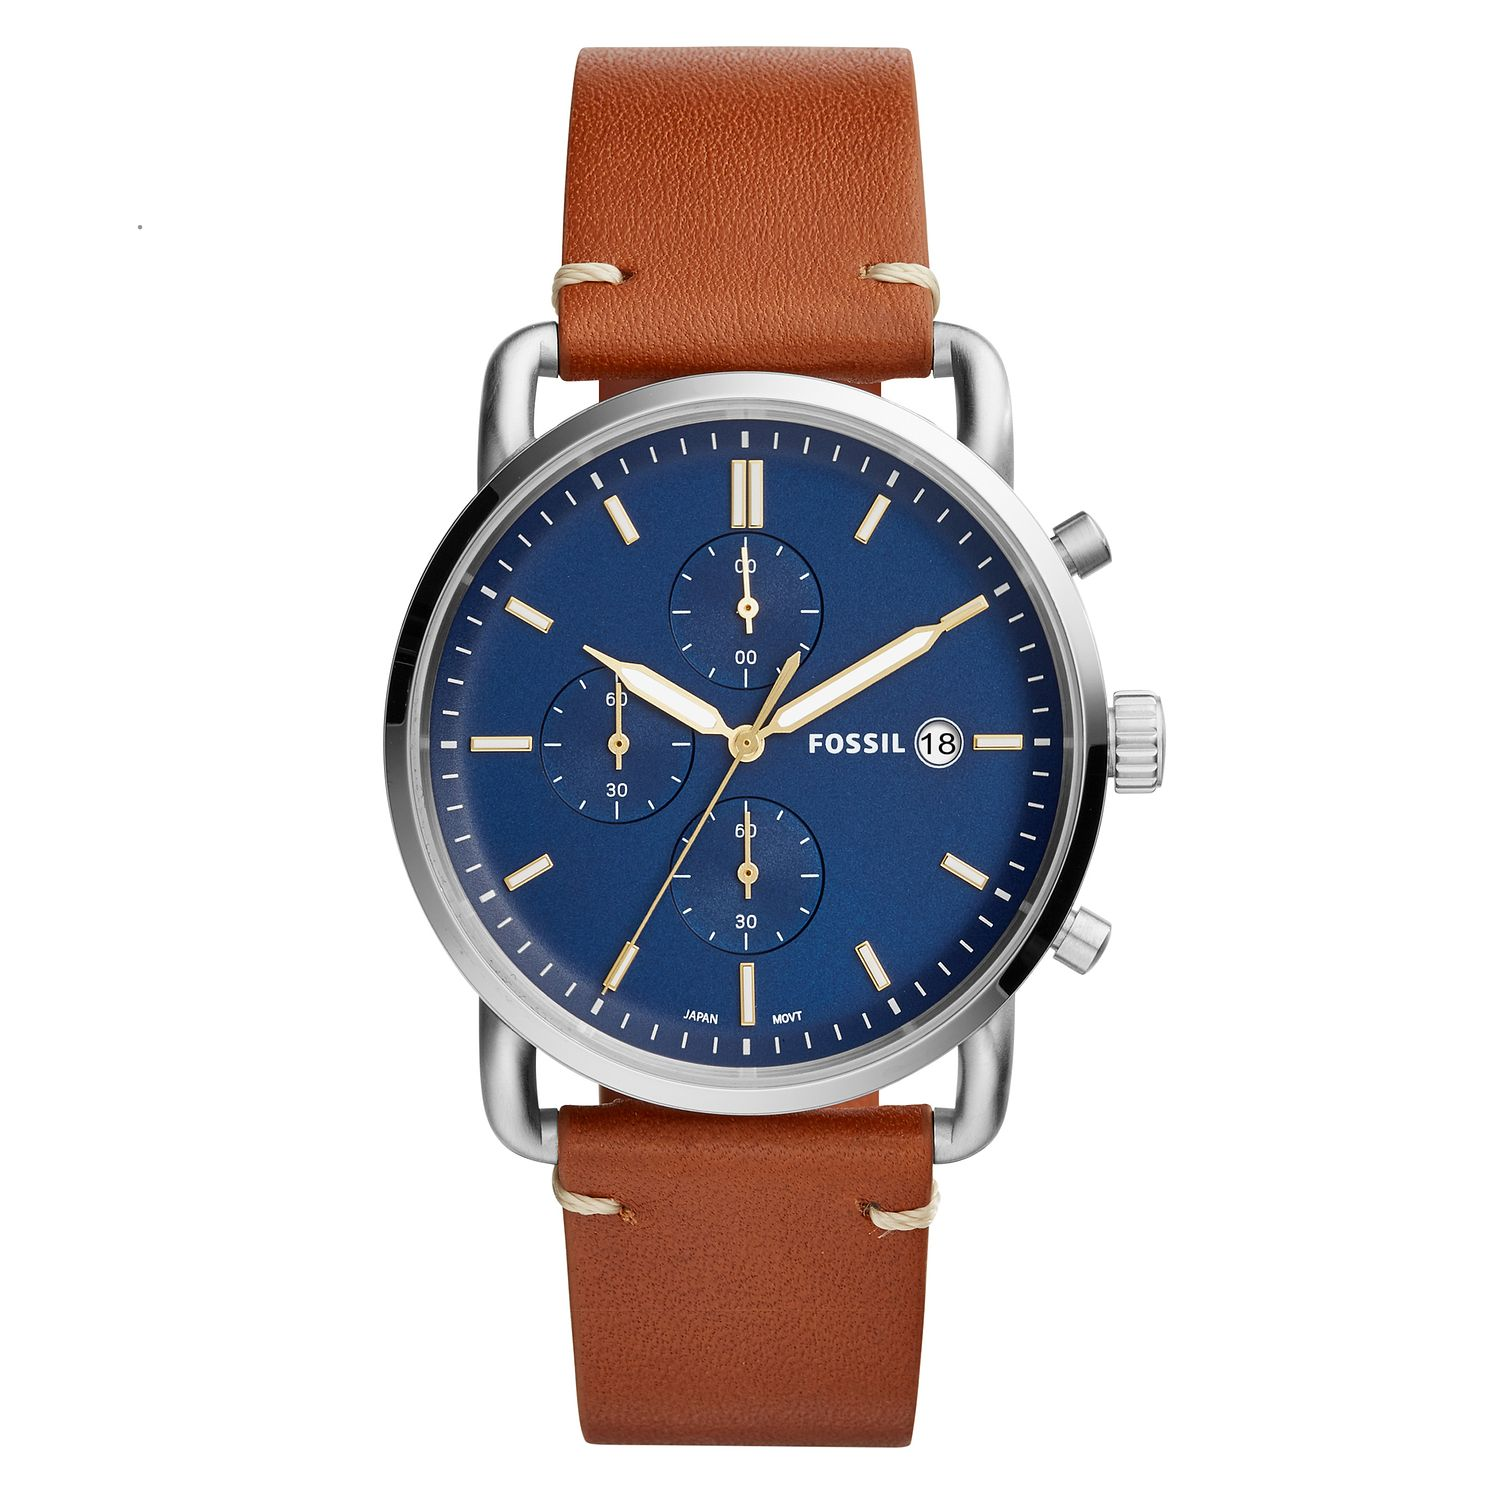 Fossil Commuter Men's Chronograph Brown Strap Watch - Product number 4166744